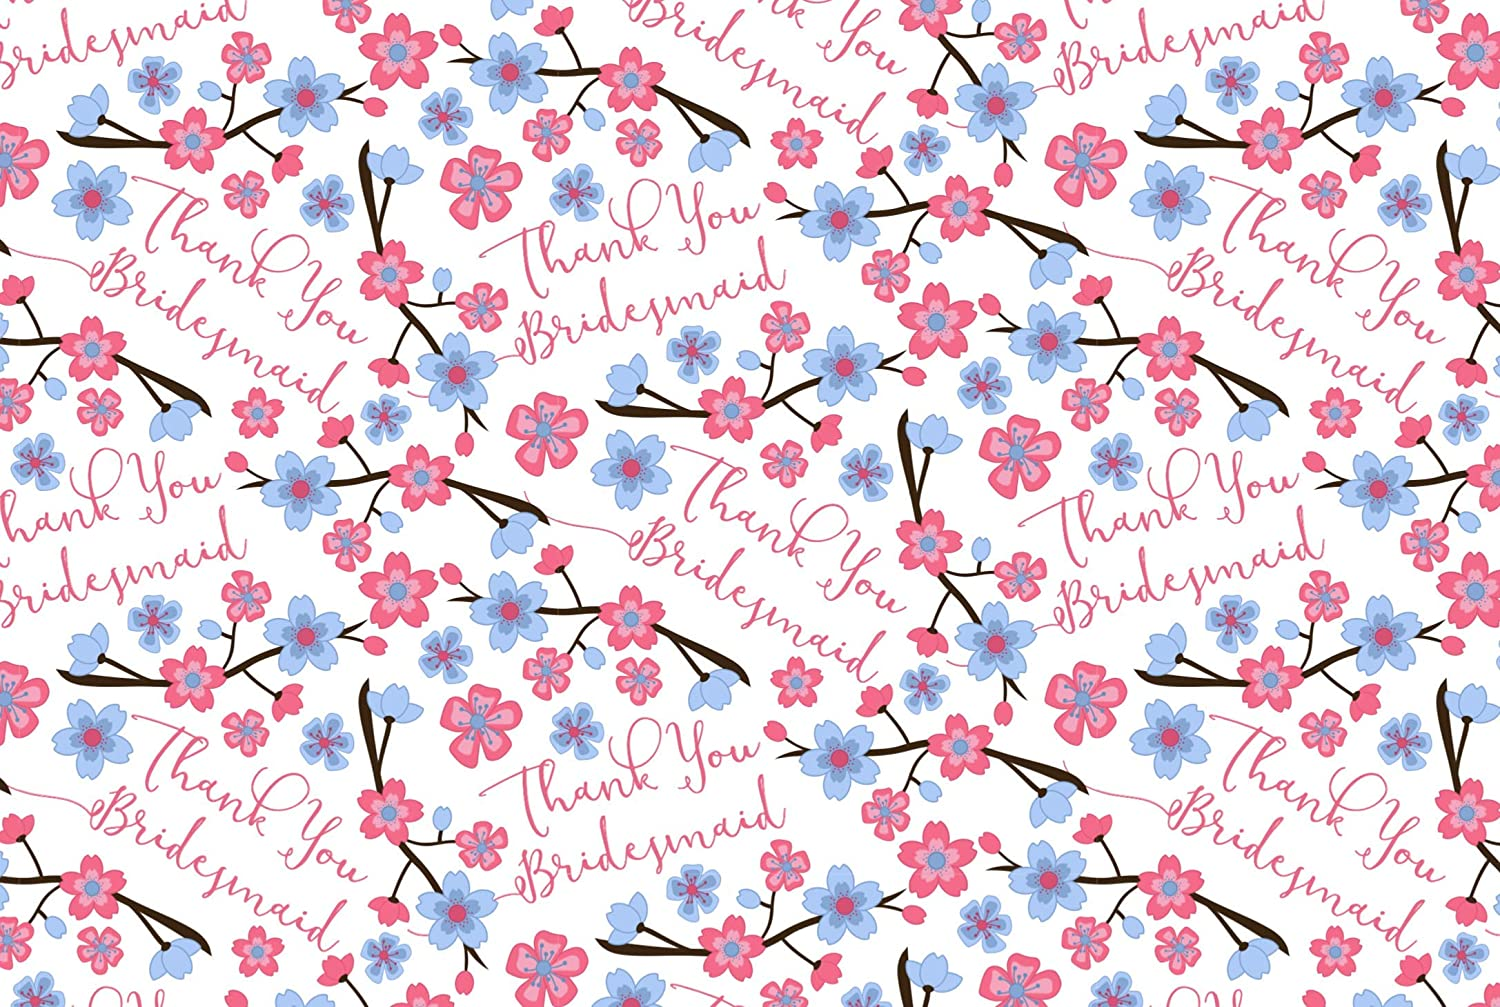 'Thank You Bridesmaid' Quality Gift Wrapping Paper & Gift Tag (2 Sheets & 2 Gift Tags) Hunts England